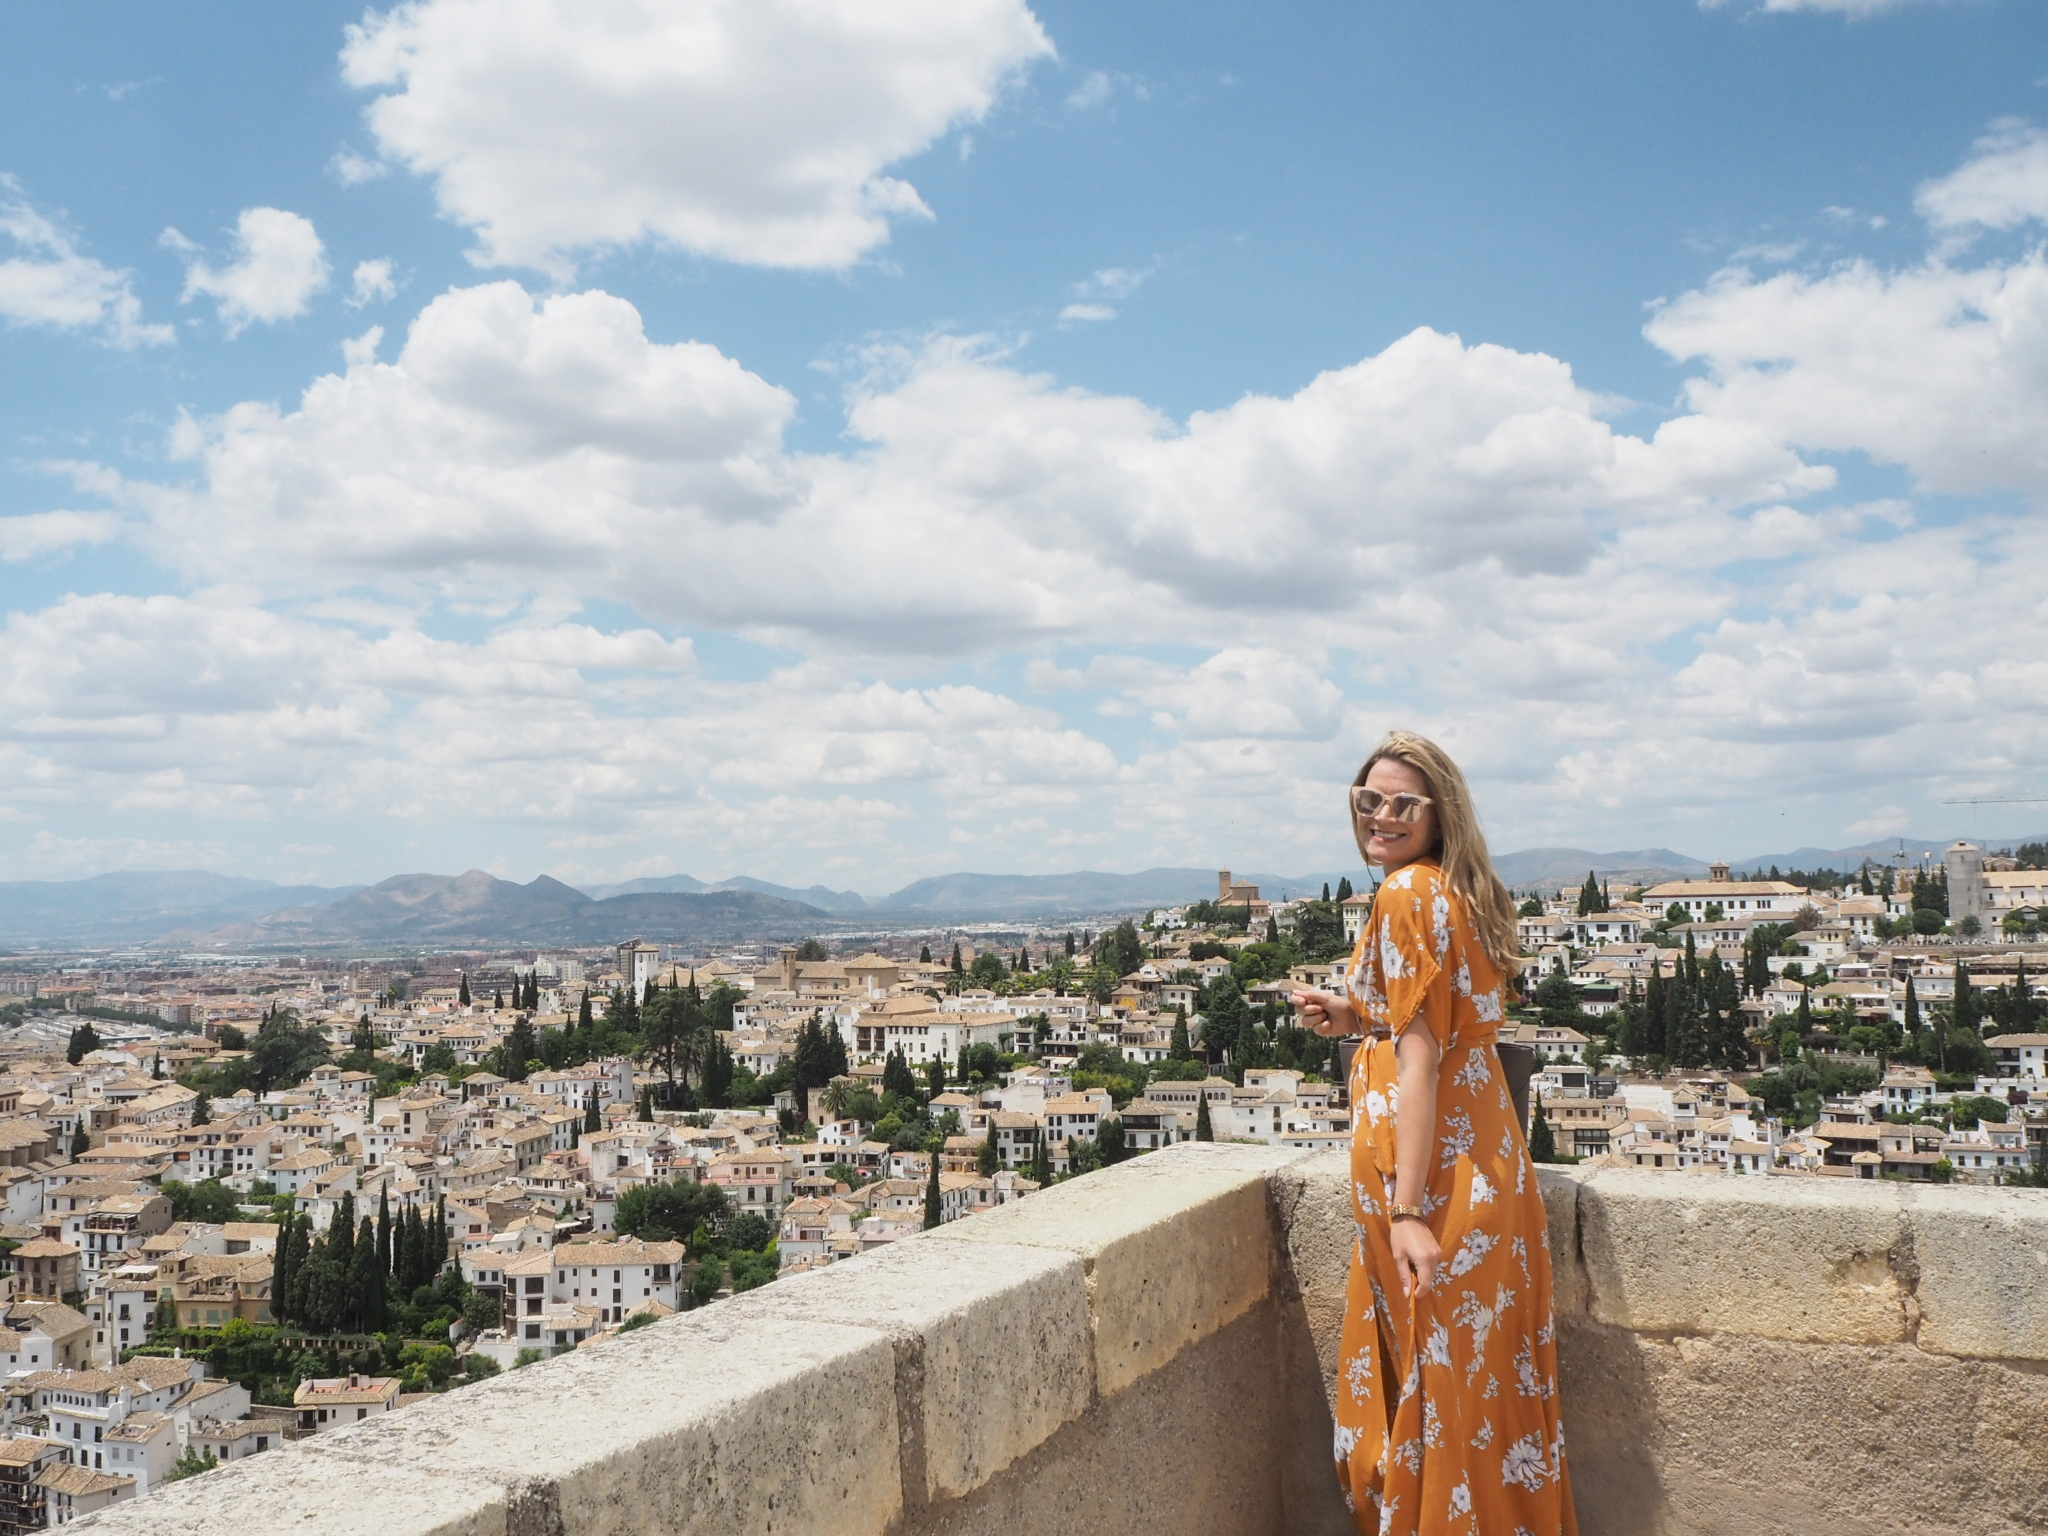 - Viewpoint from Alcazaba